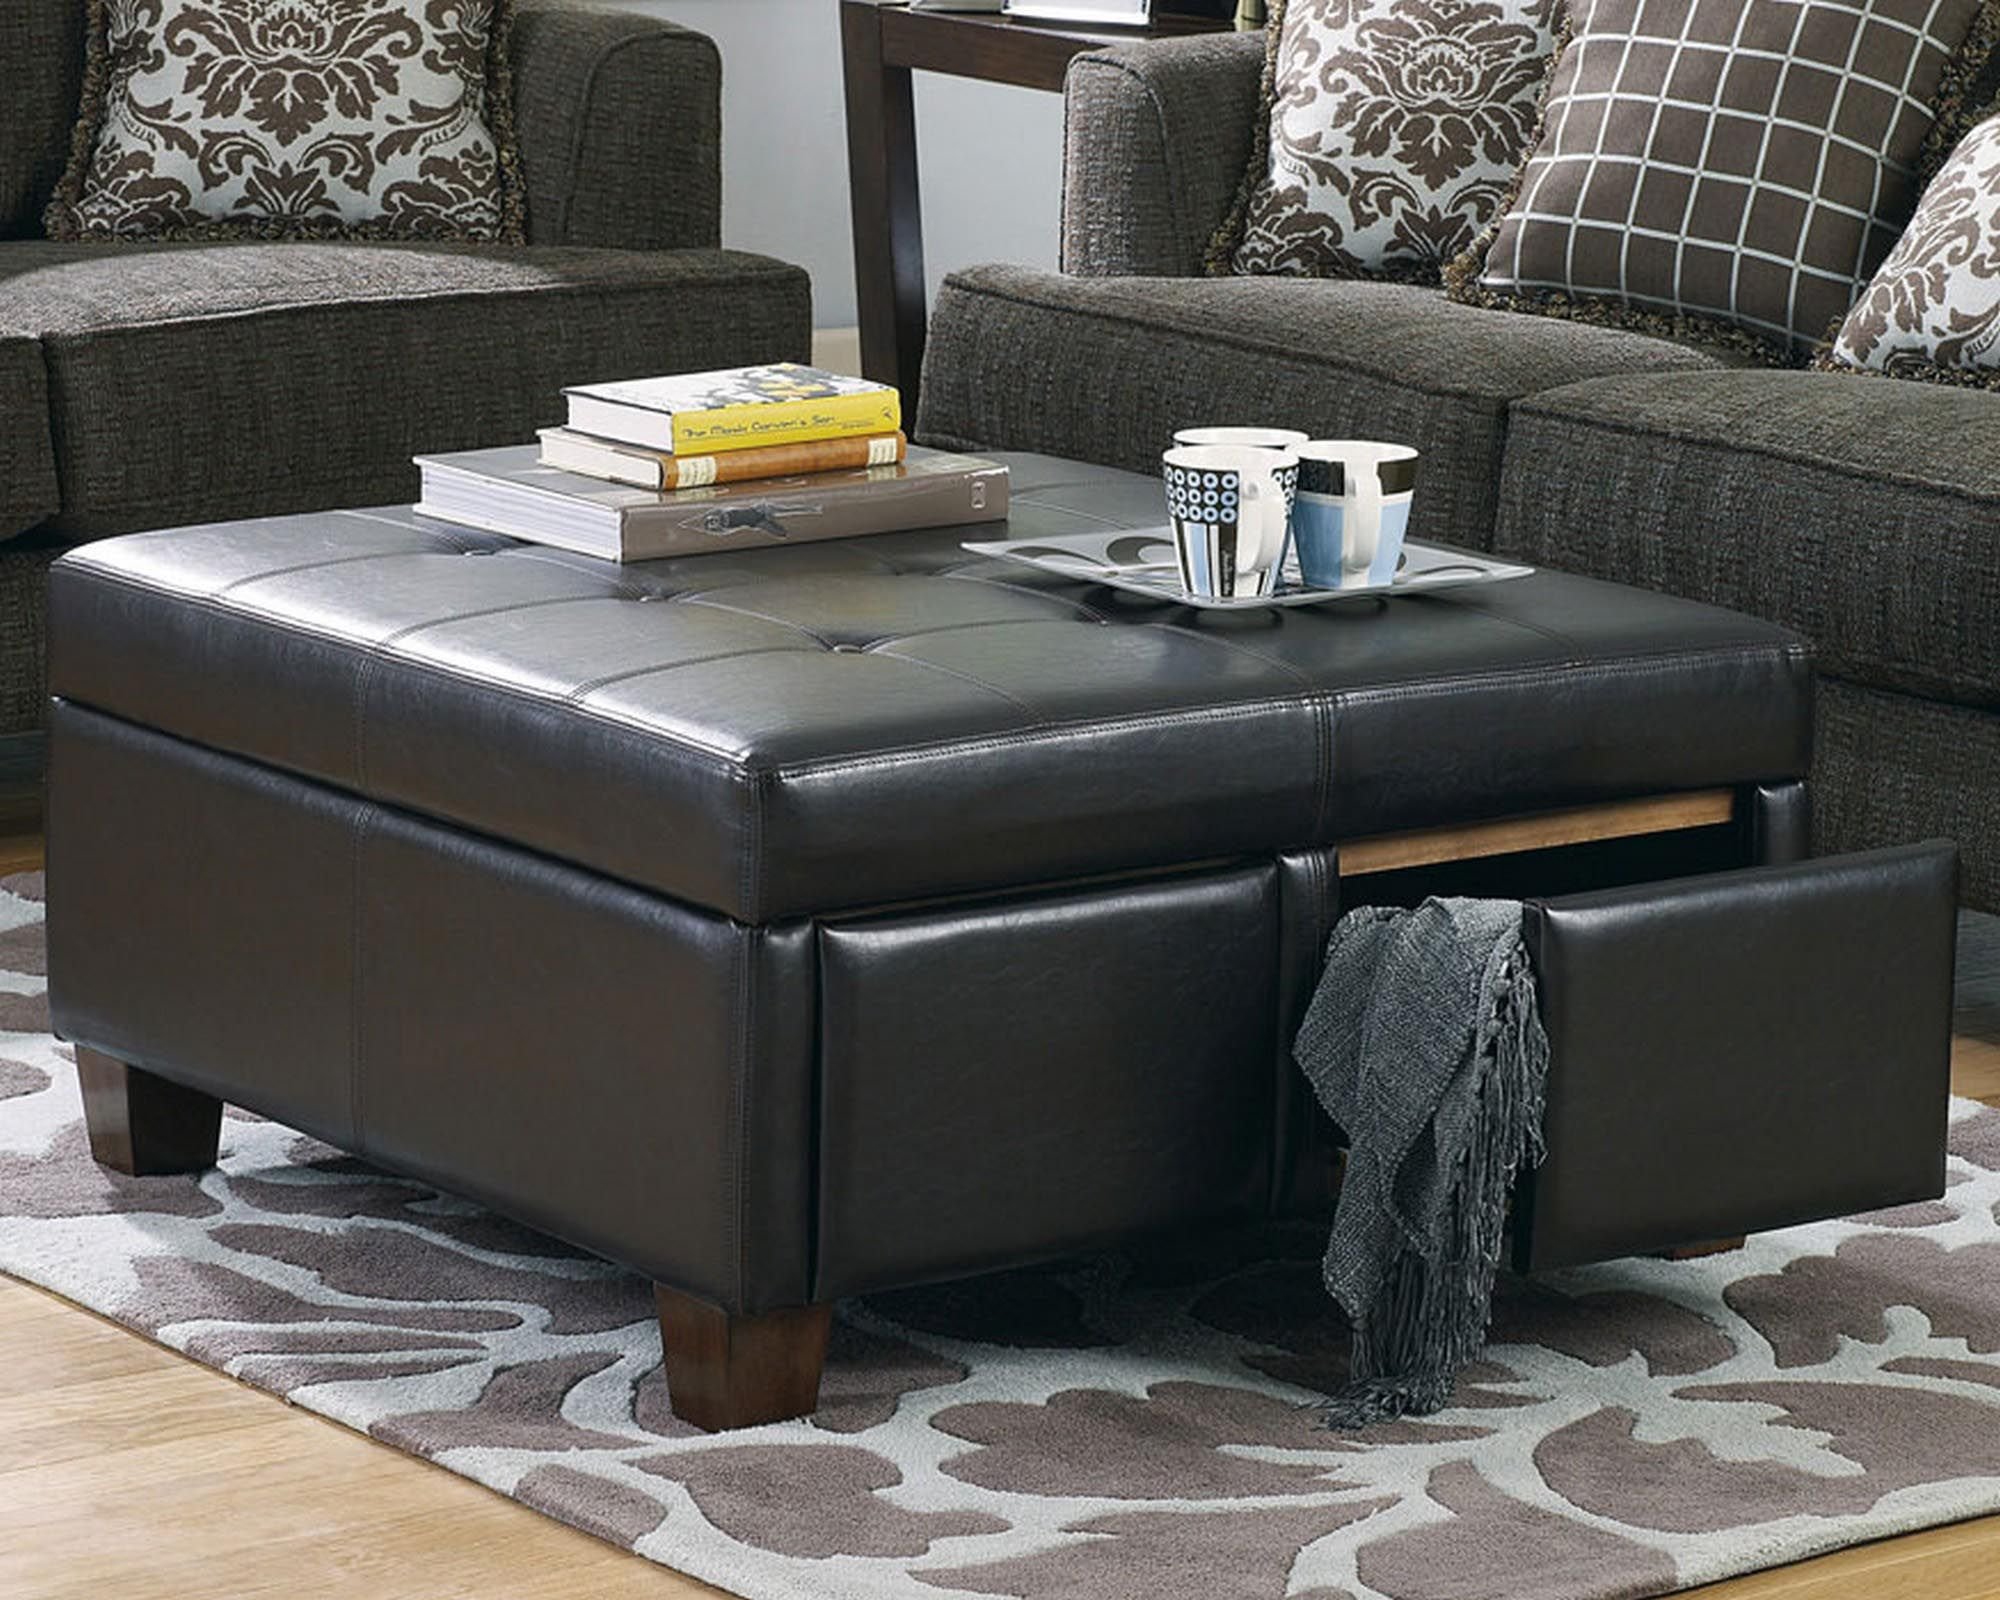 Black Leather Ottoman Coffee Table Coffee Tables Leather Ottoman intended for sizing 2000 X 1600